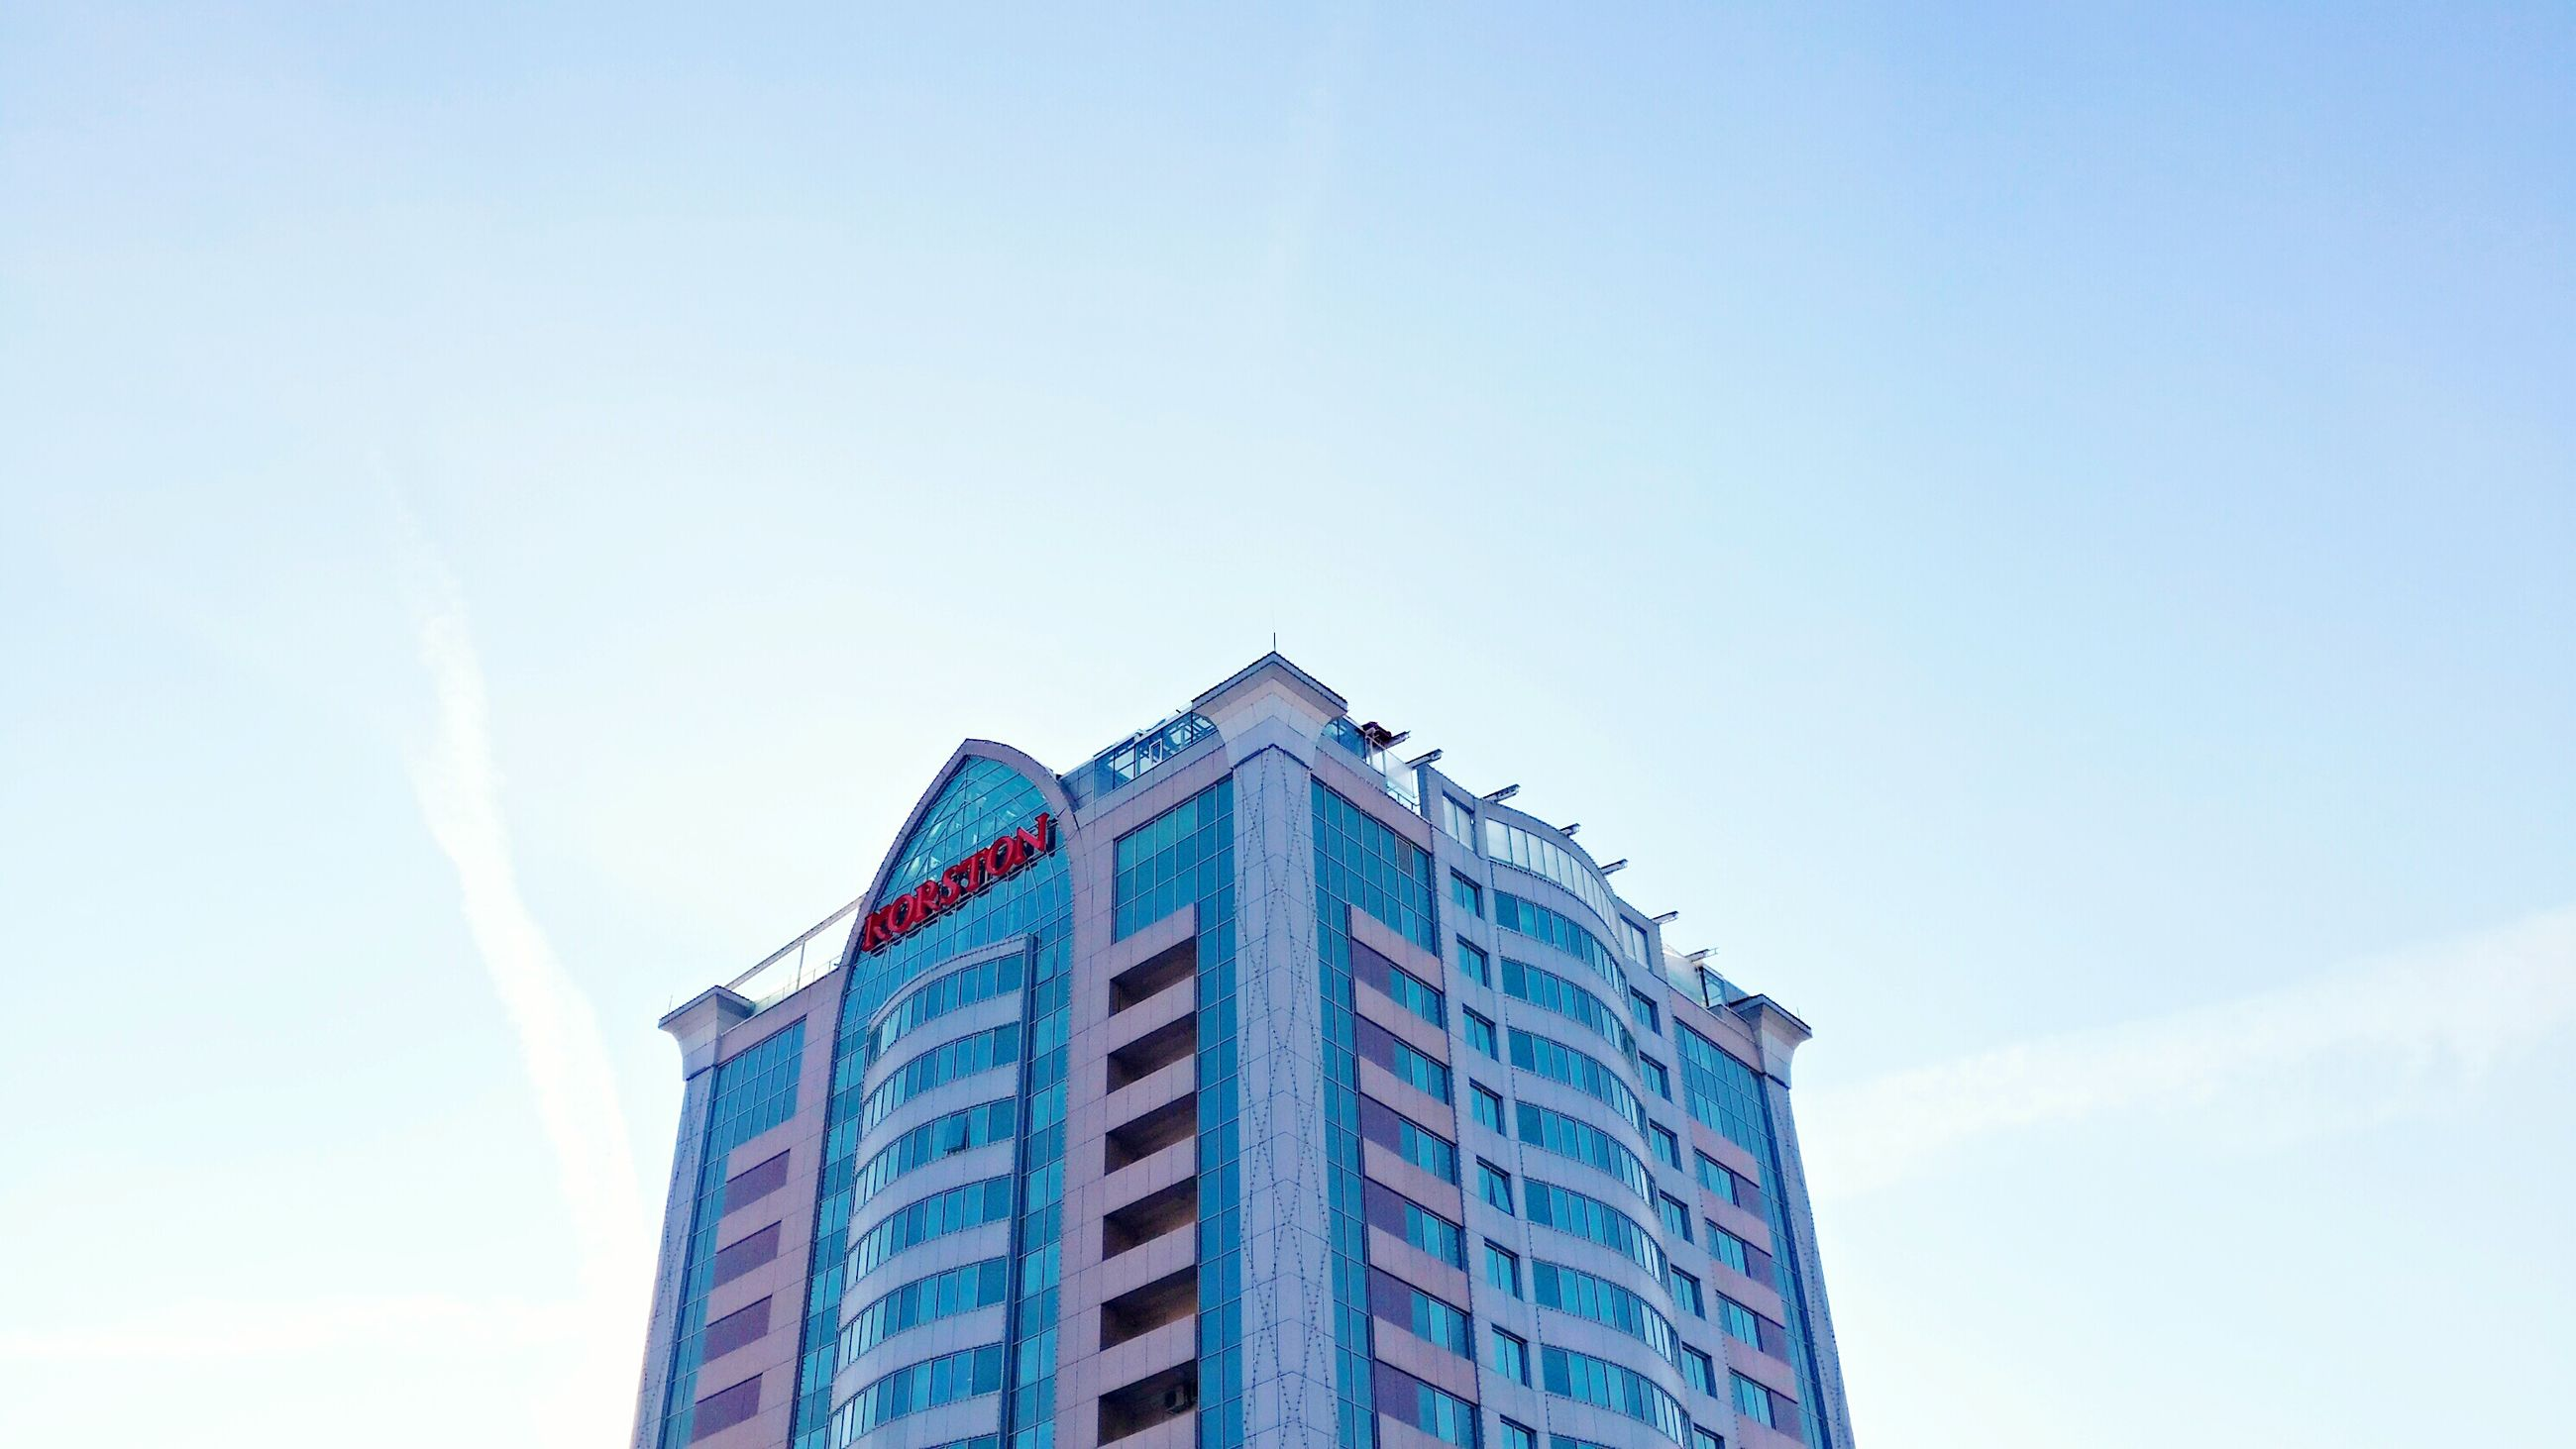 building exterior, architecture, low angle view, built structure, blue, clear sky, copy space, city, building, office building, modern, sky, high section, tower, tall - high, day, outdoors, skyscraper, no people, window